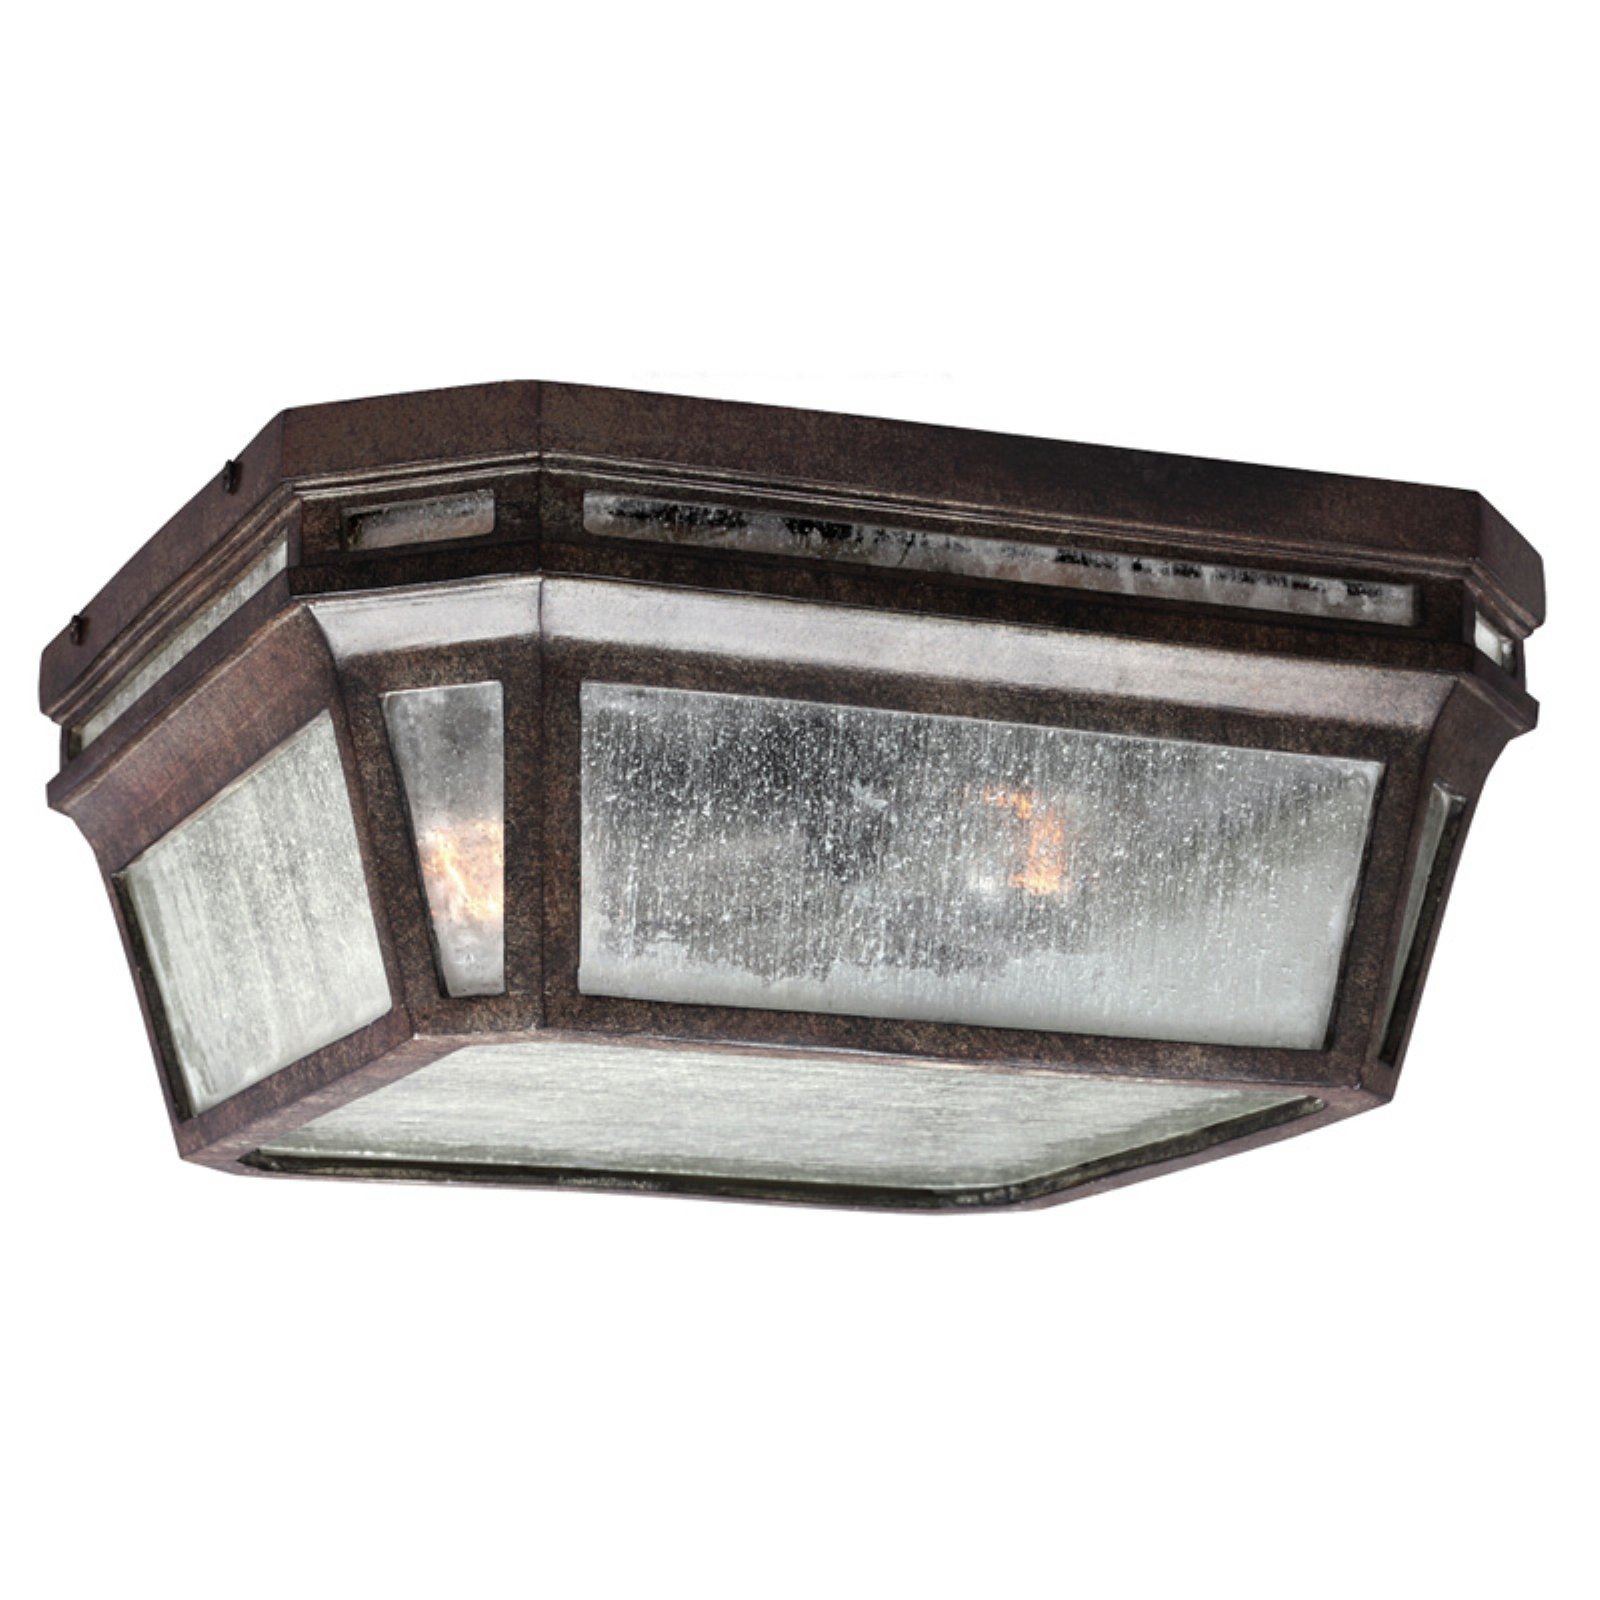 Feiss Londontowne OL11313 Outdoor Ceiling Light